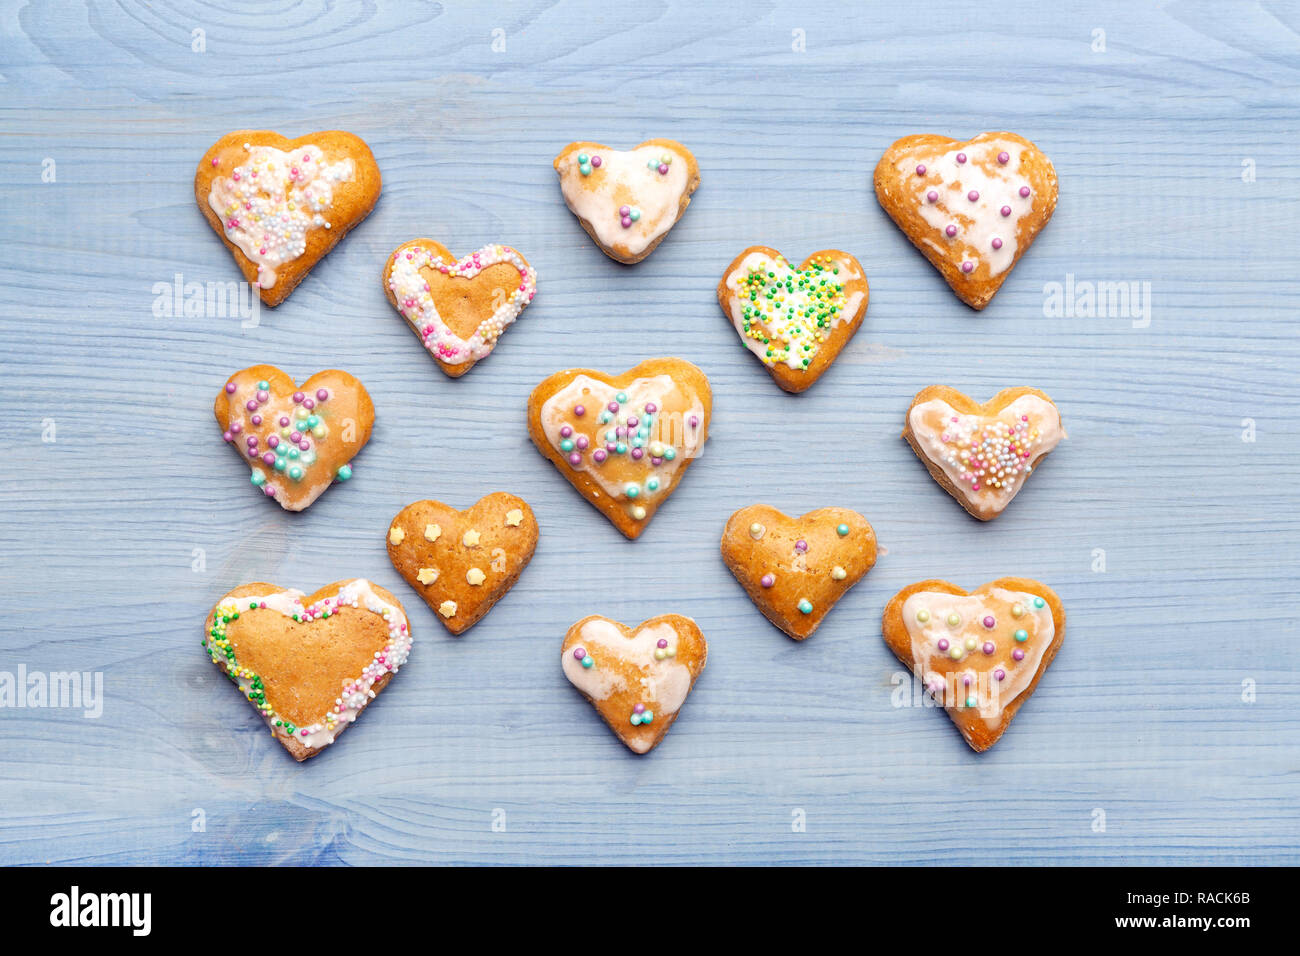 Gingerbread cookies on blue wooden background Stock Photo